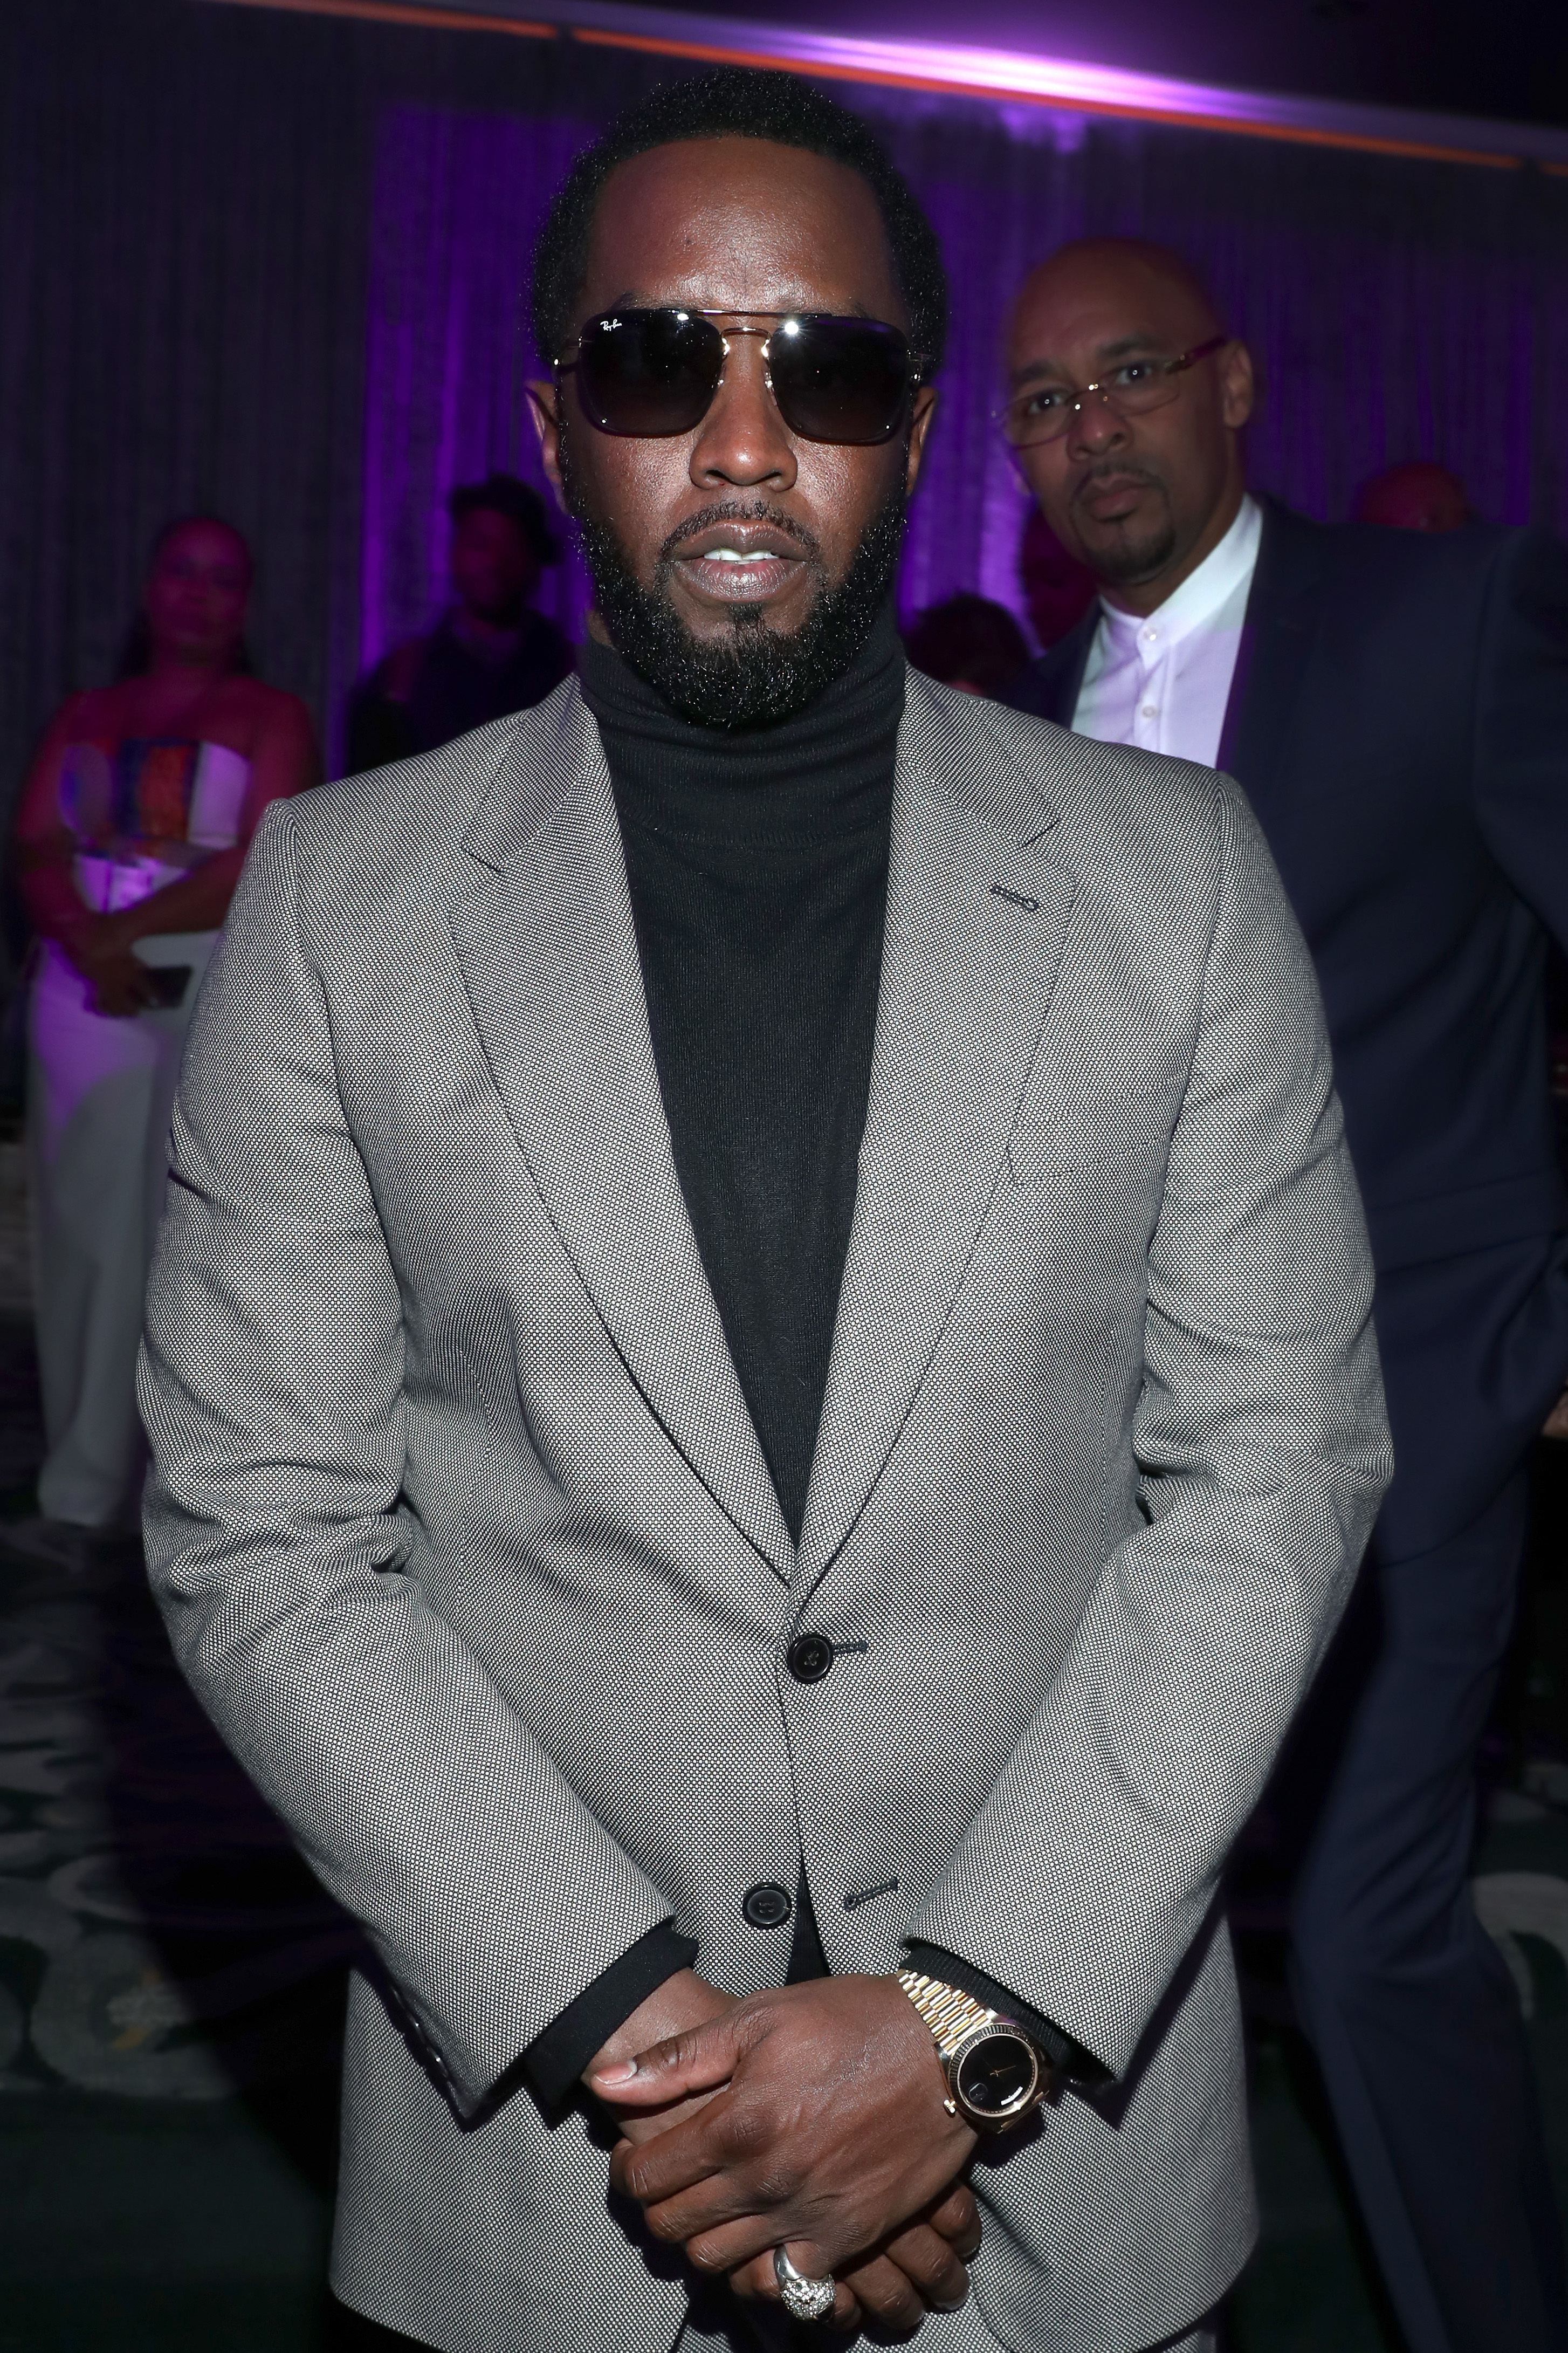 """Sean """"Diddy"""" Combs attends the 2019 Essence Black Women in Hollywood Awards Luncheon at Regent Beverly Wilshire Hotel in Los Angeles on Feb. 21, 2019."""